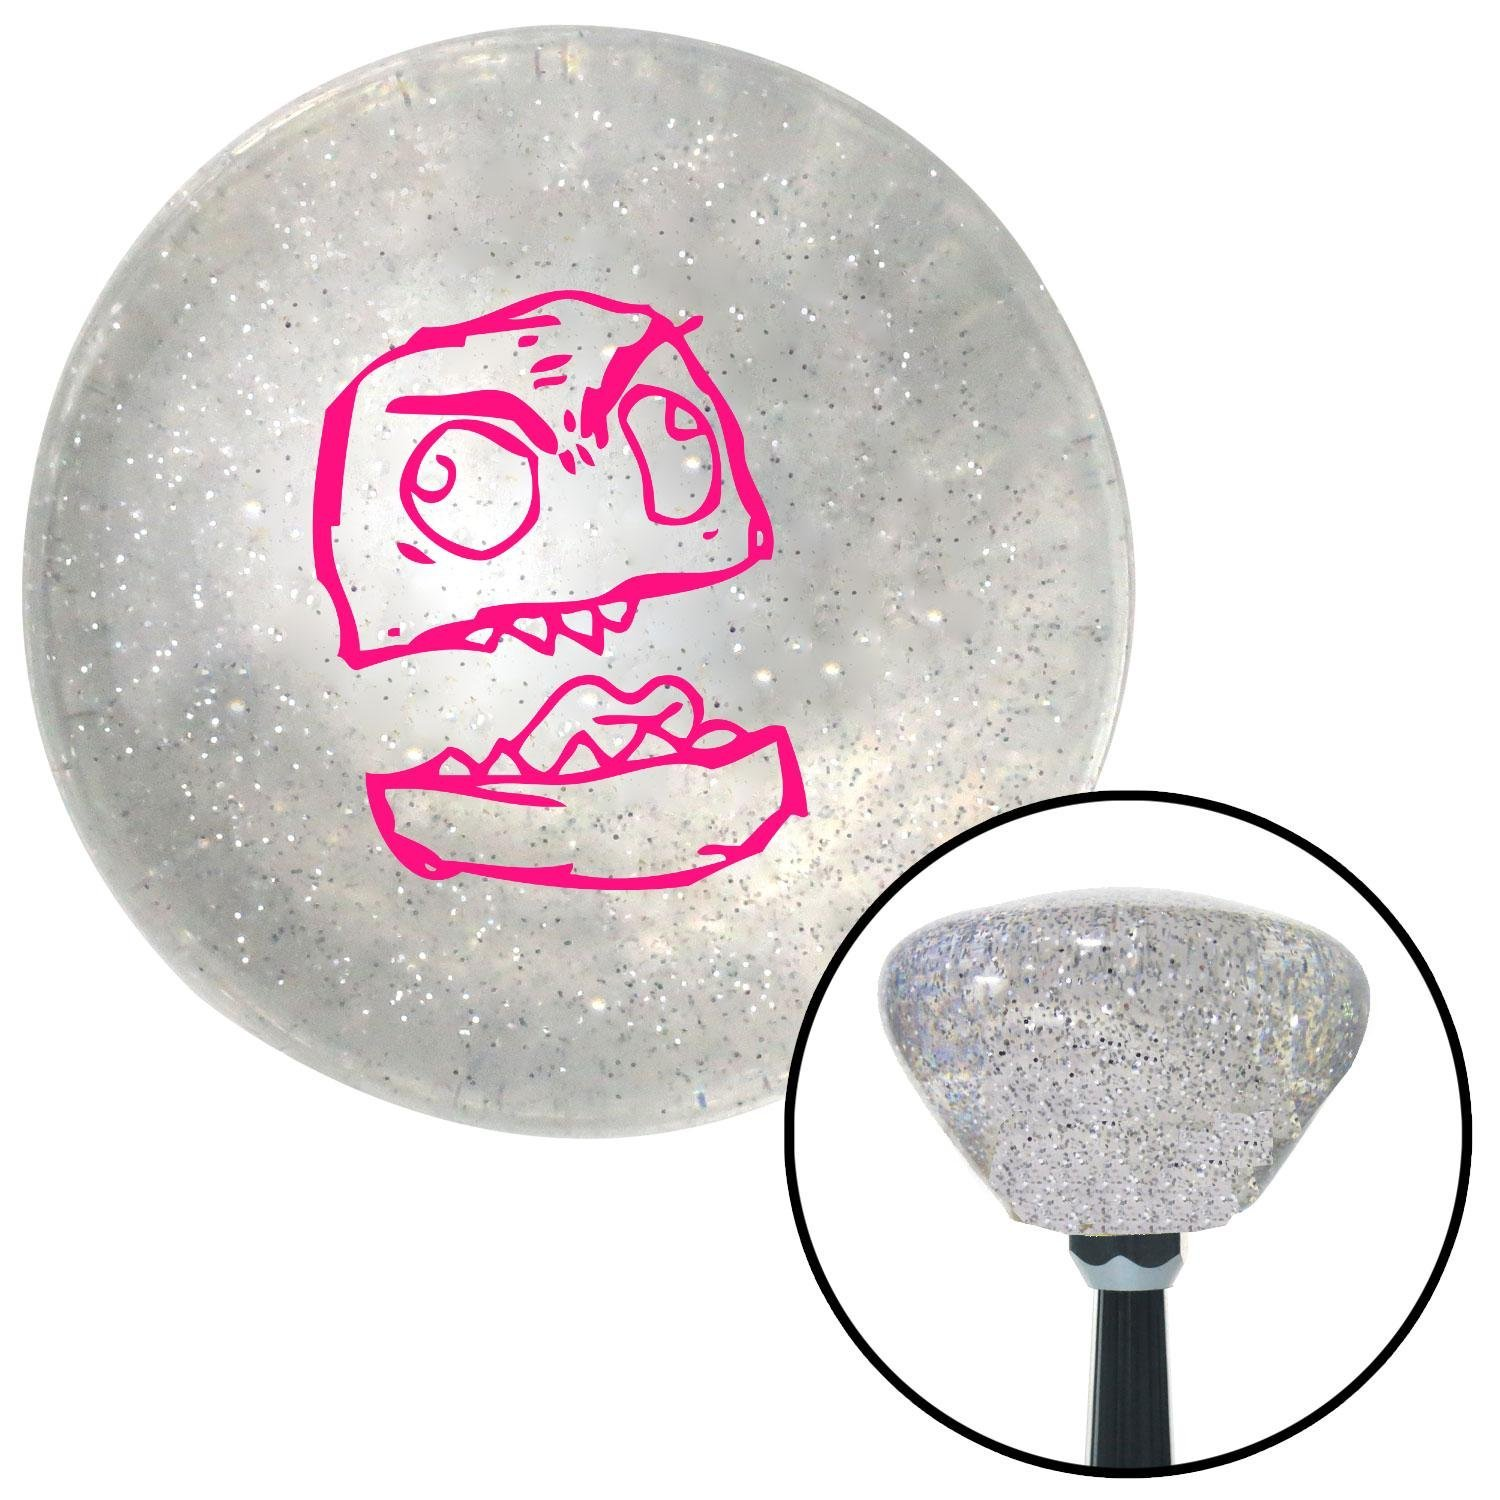 Pink Canadian American Shifter 161457 Clear Retro Metal Flake Shift Knob with M16 x 1.5 Insert